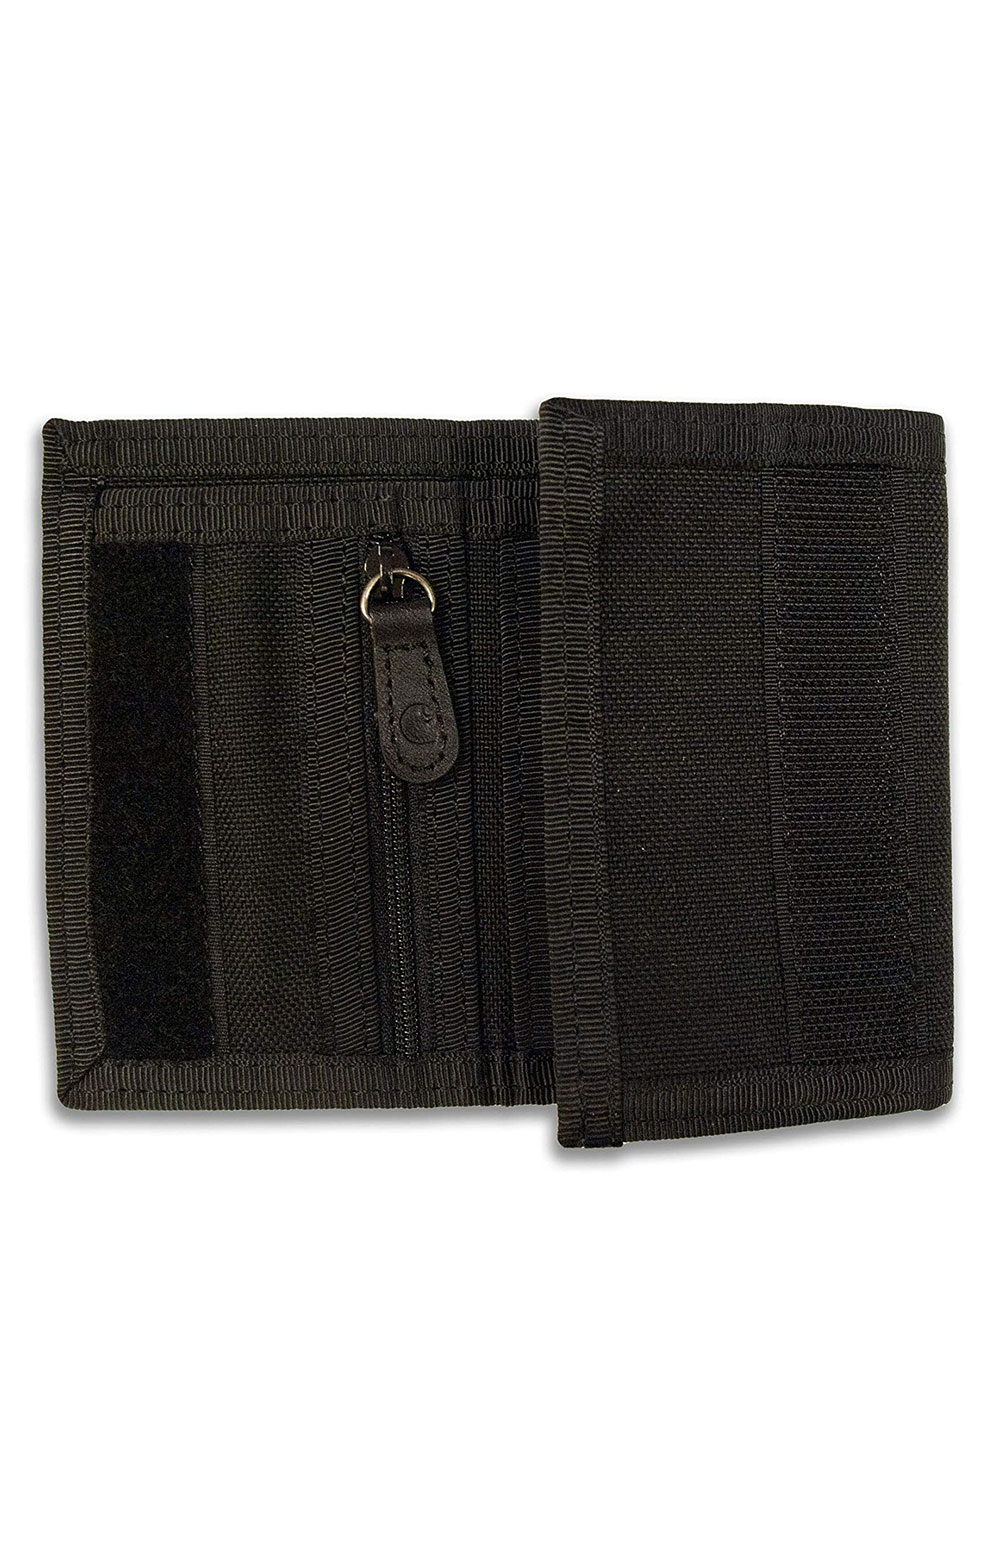 (B000021100299) Extremes Trifold Wallet - Black 3